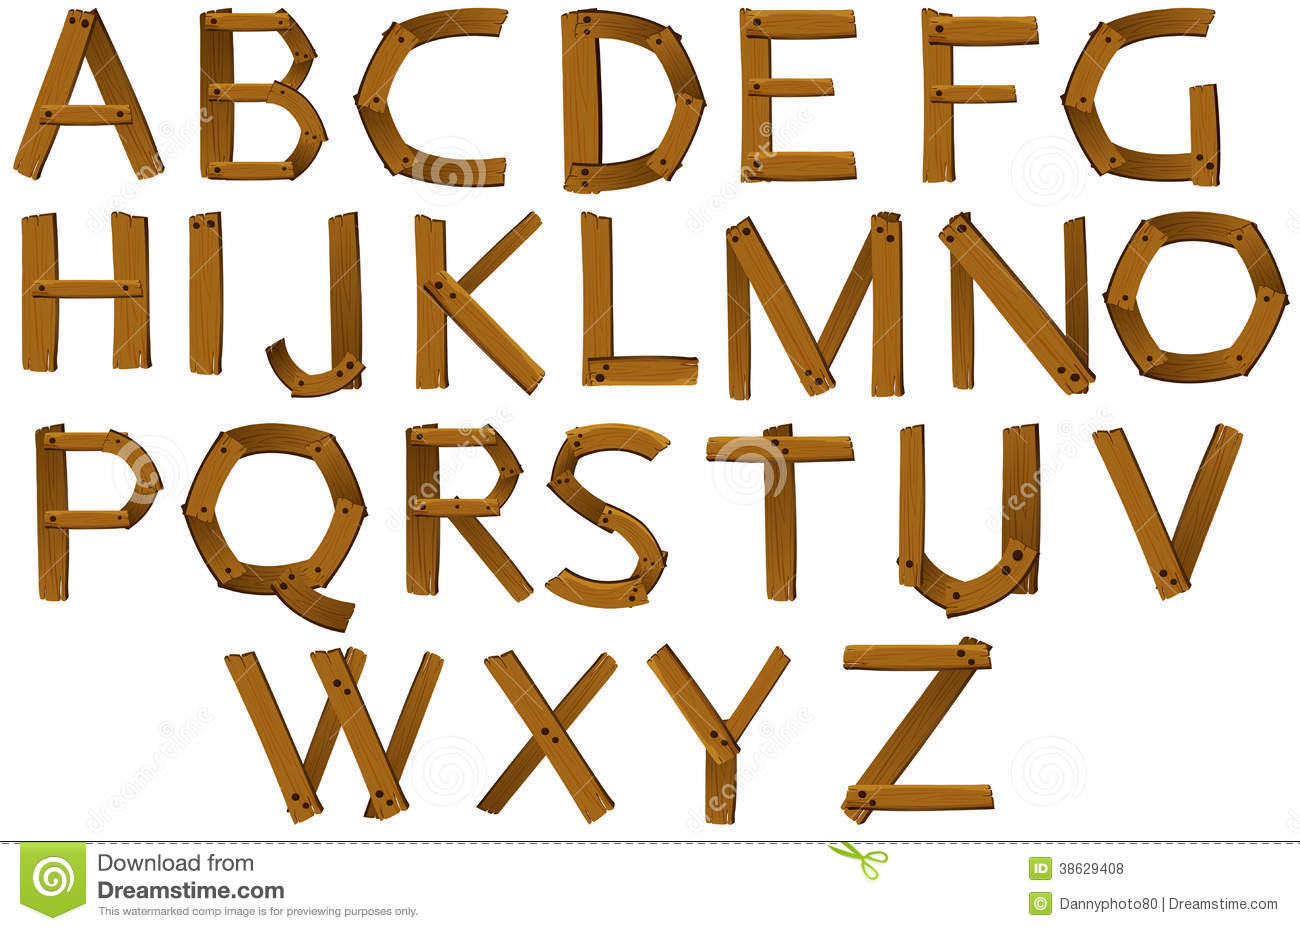 ninth letter of the alphabet stock photos images wooden letters of the alphabet royalty free stock photos 265